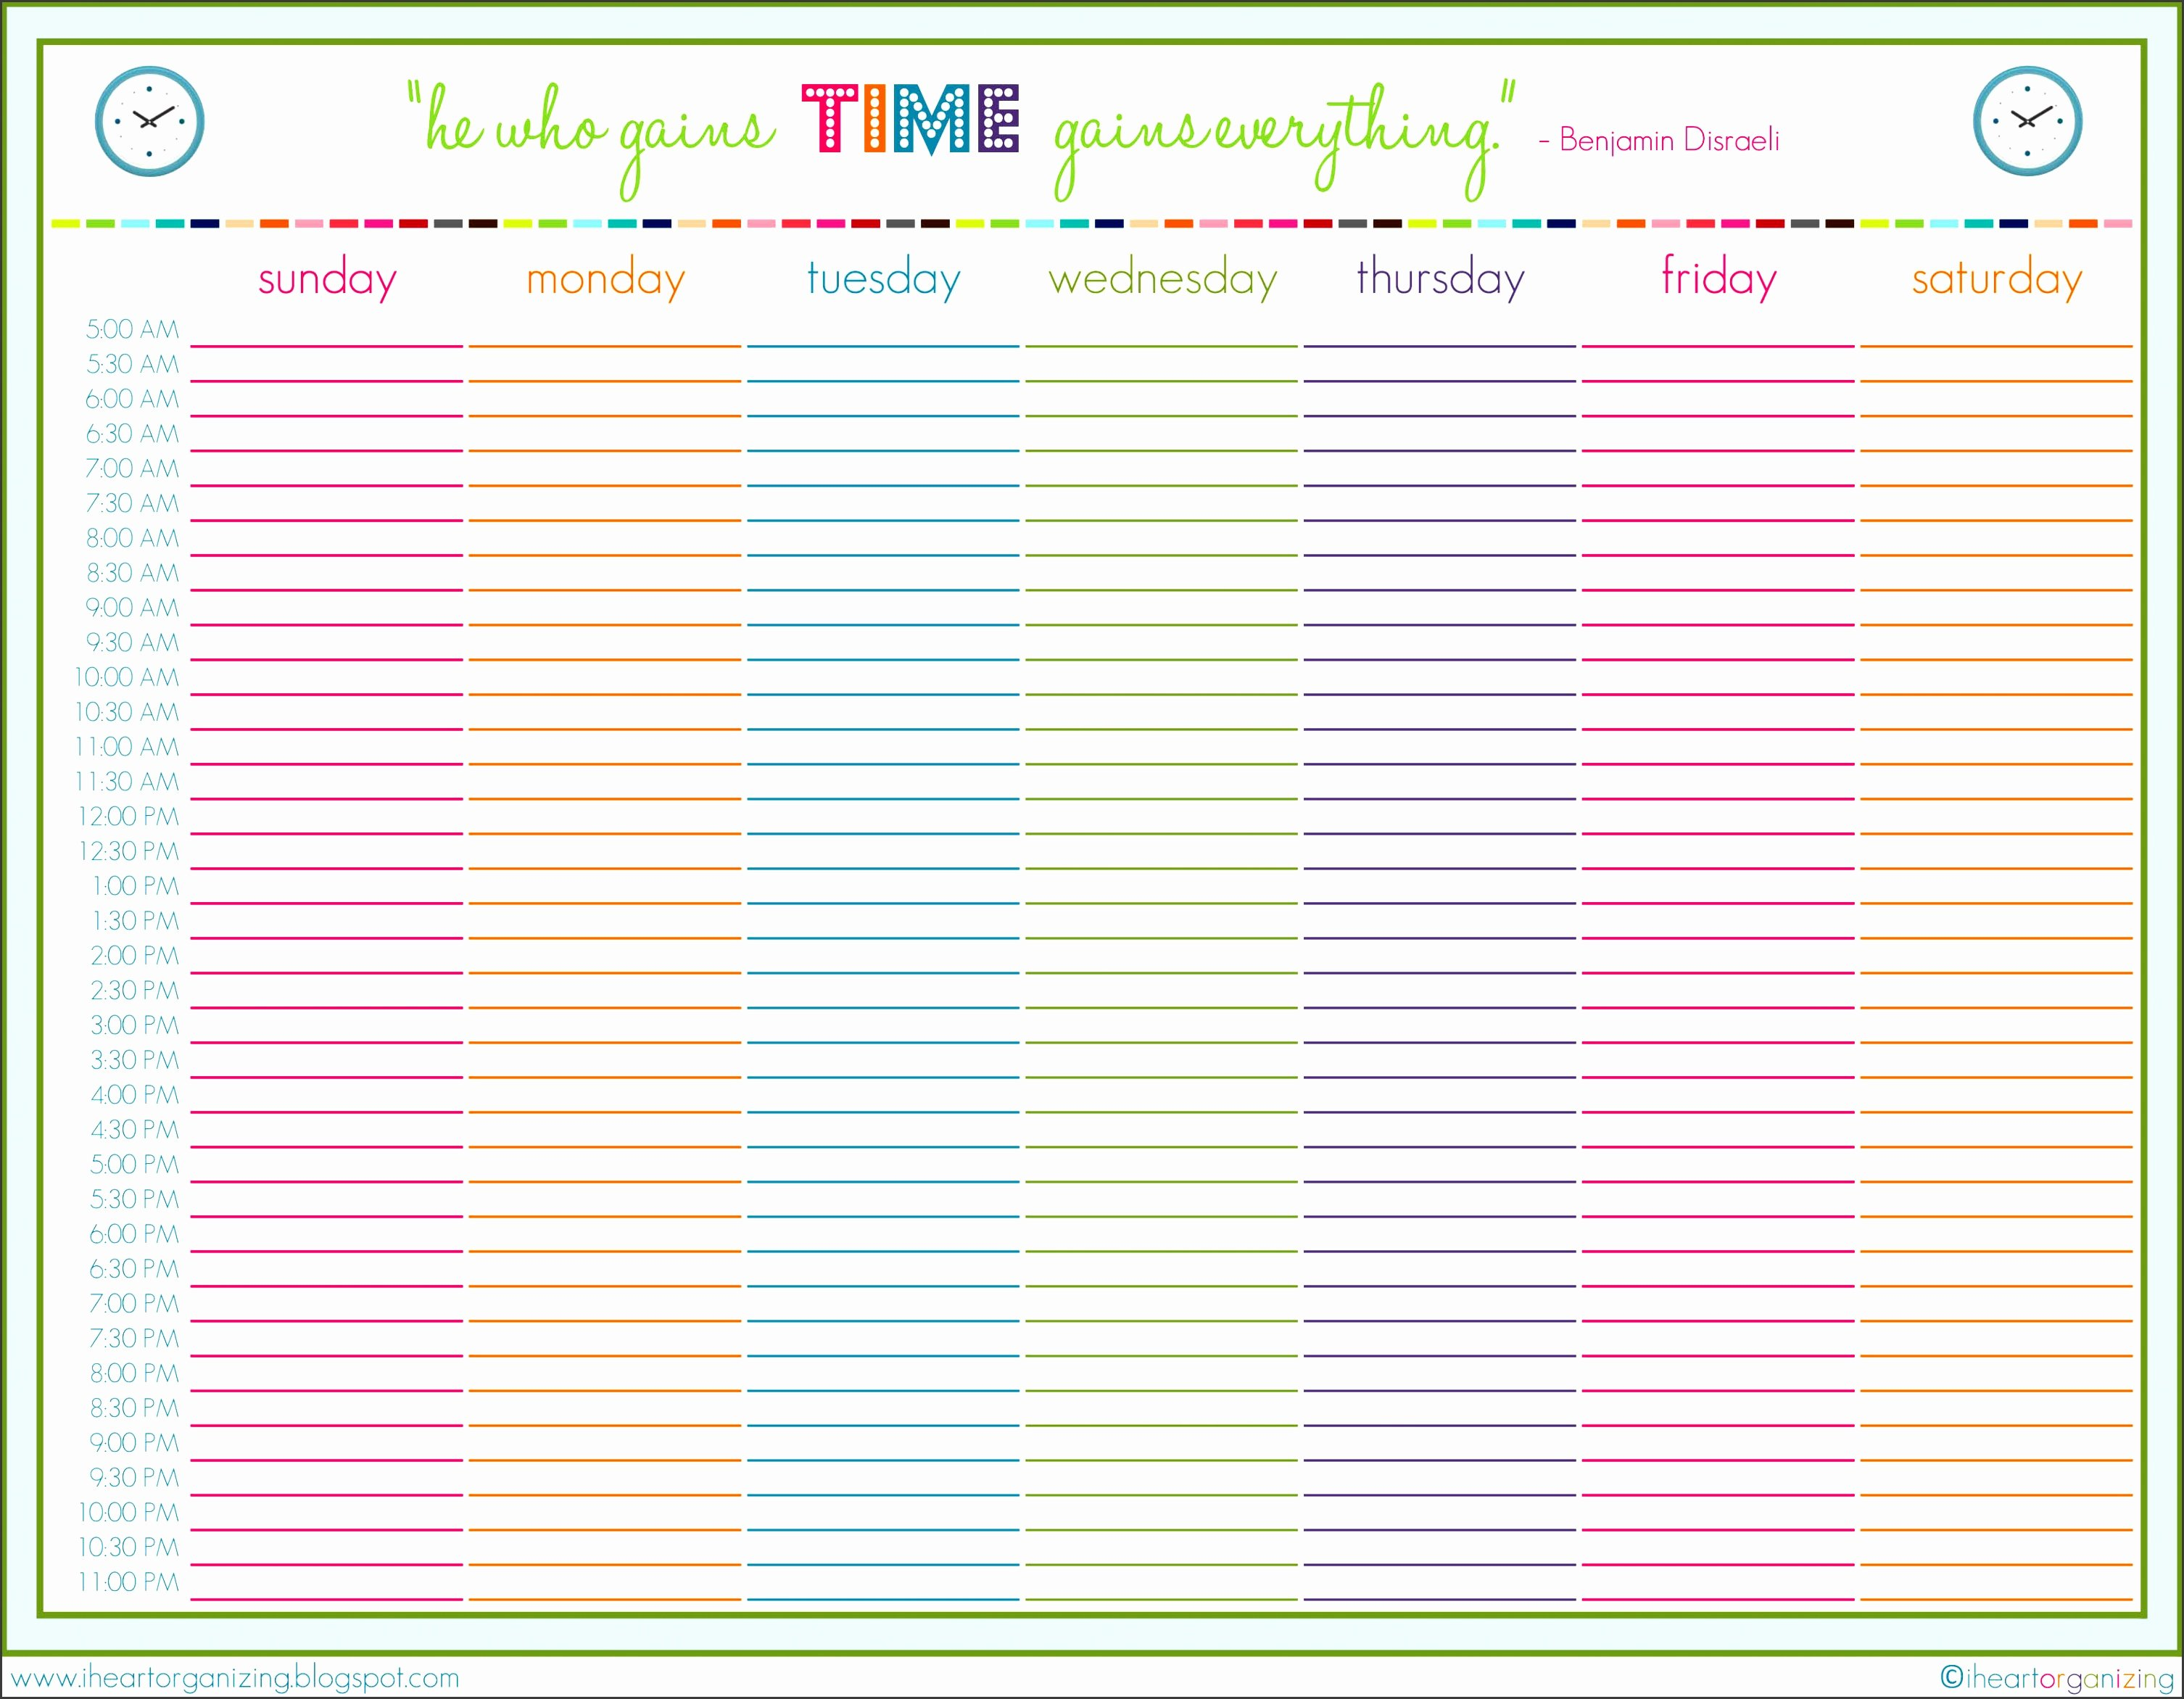 One Week Schedule Template Unique 10 E Week Planner Line Sampletemplatess